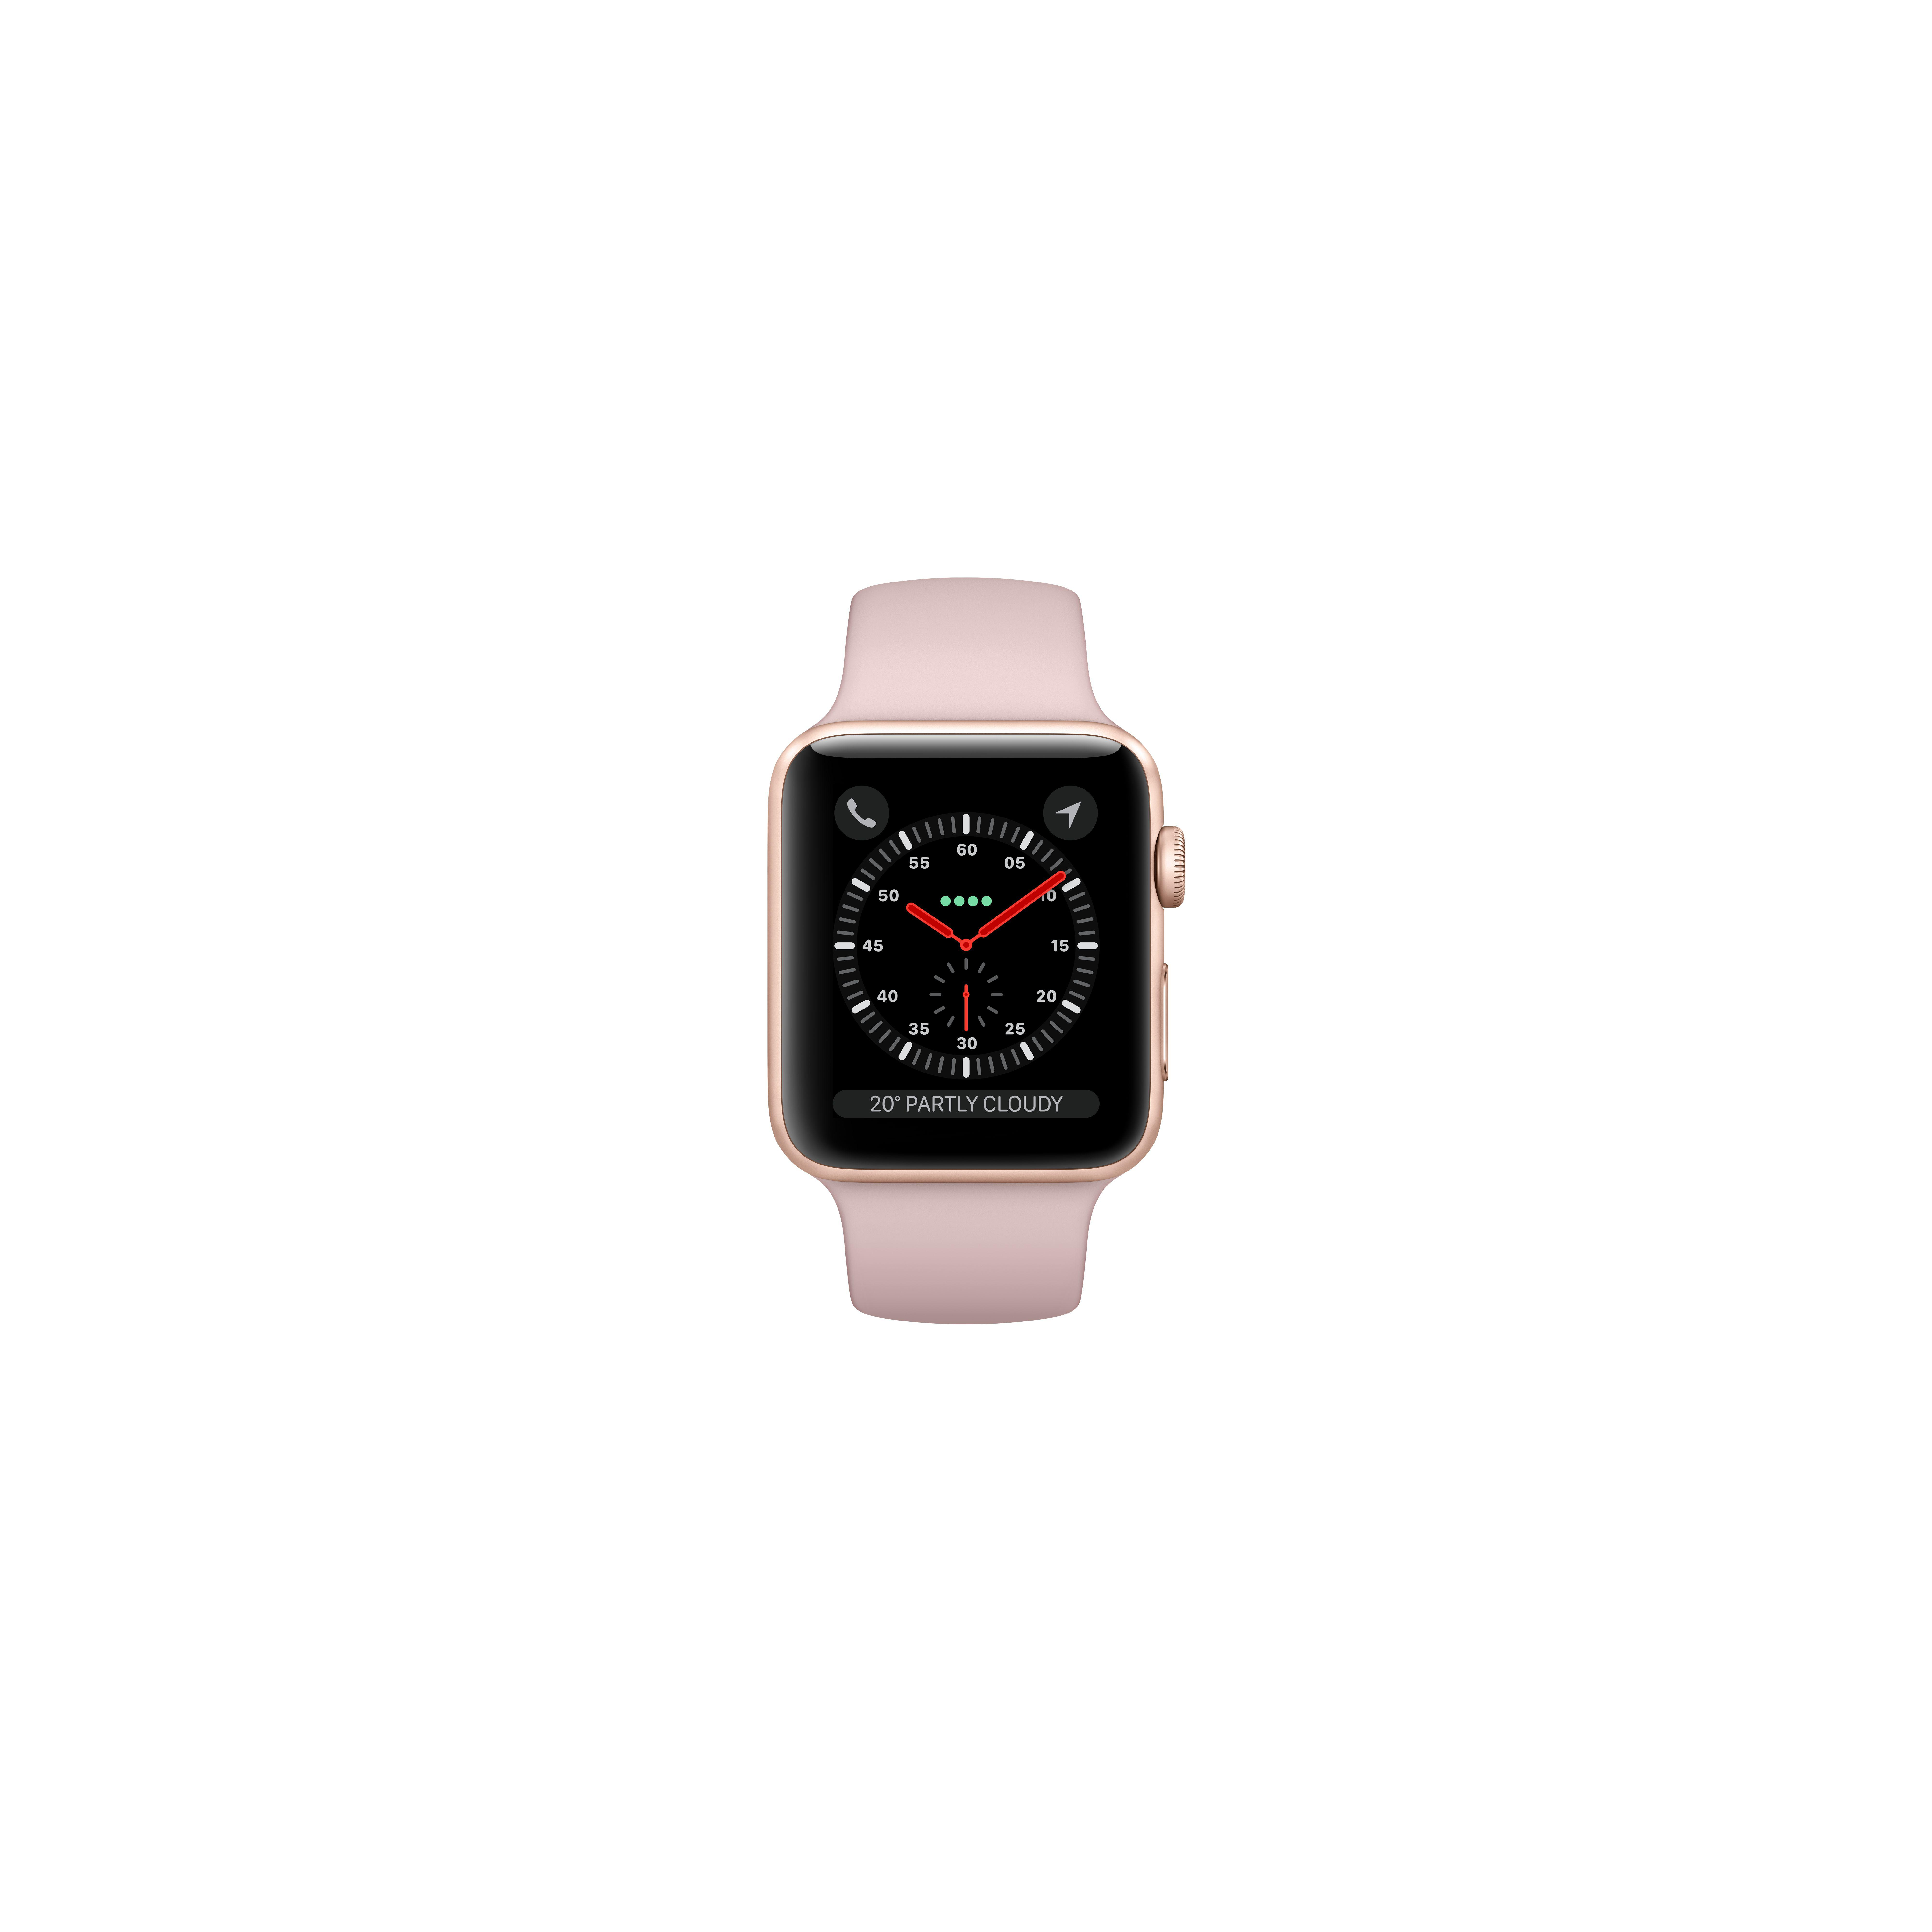 lte watches canadian cellular both which versions pricing announced availability will the series offer and apple non header company watch in today